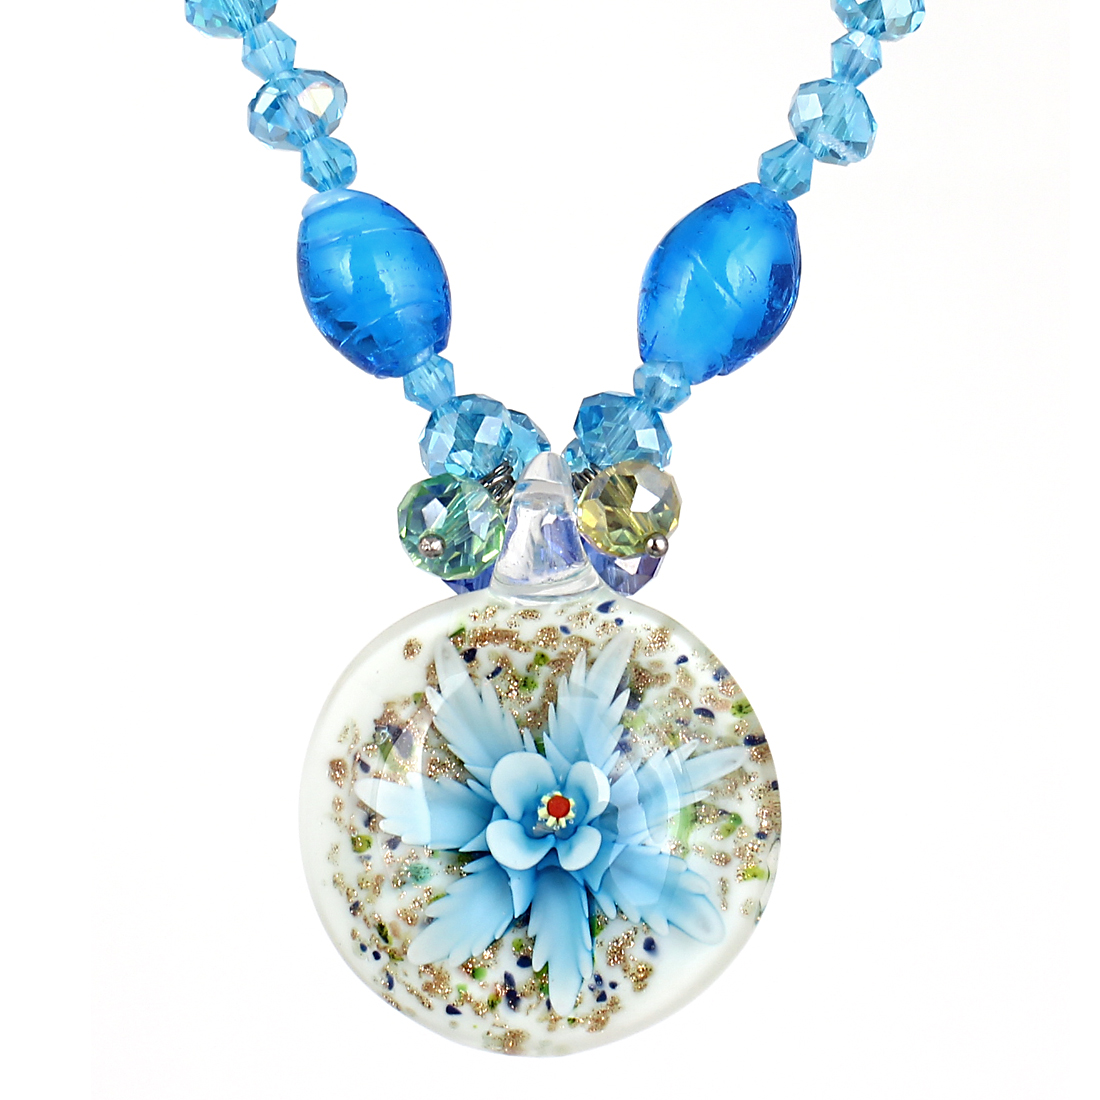 Blue Faceted Rhinestone Inlaid Neck String Round Glass Flower Press Pendant Necklace for Lady